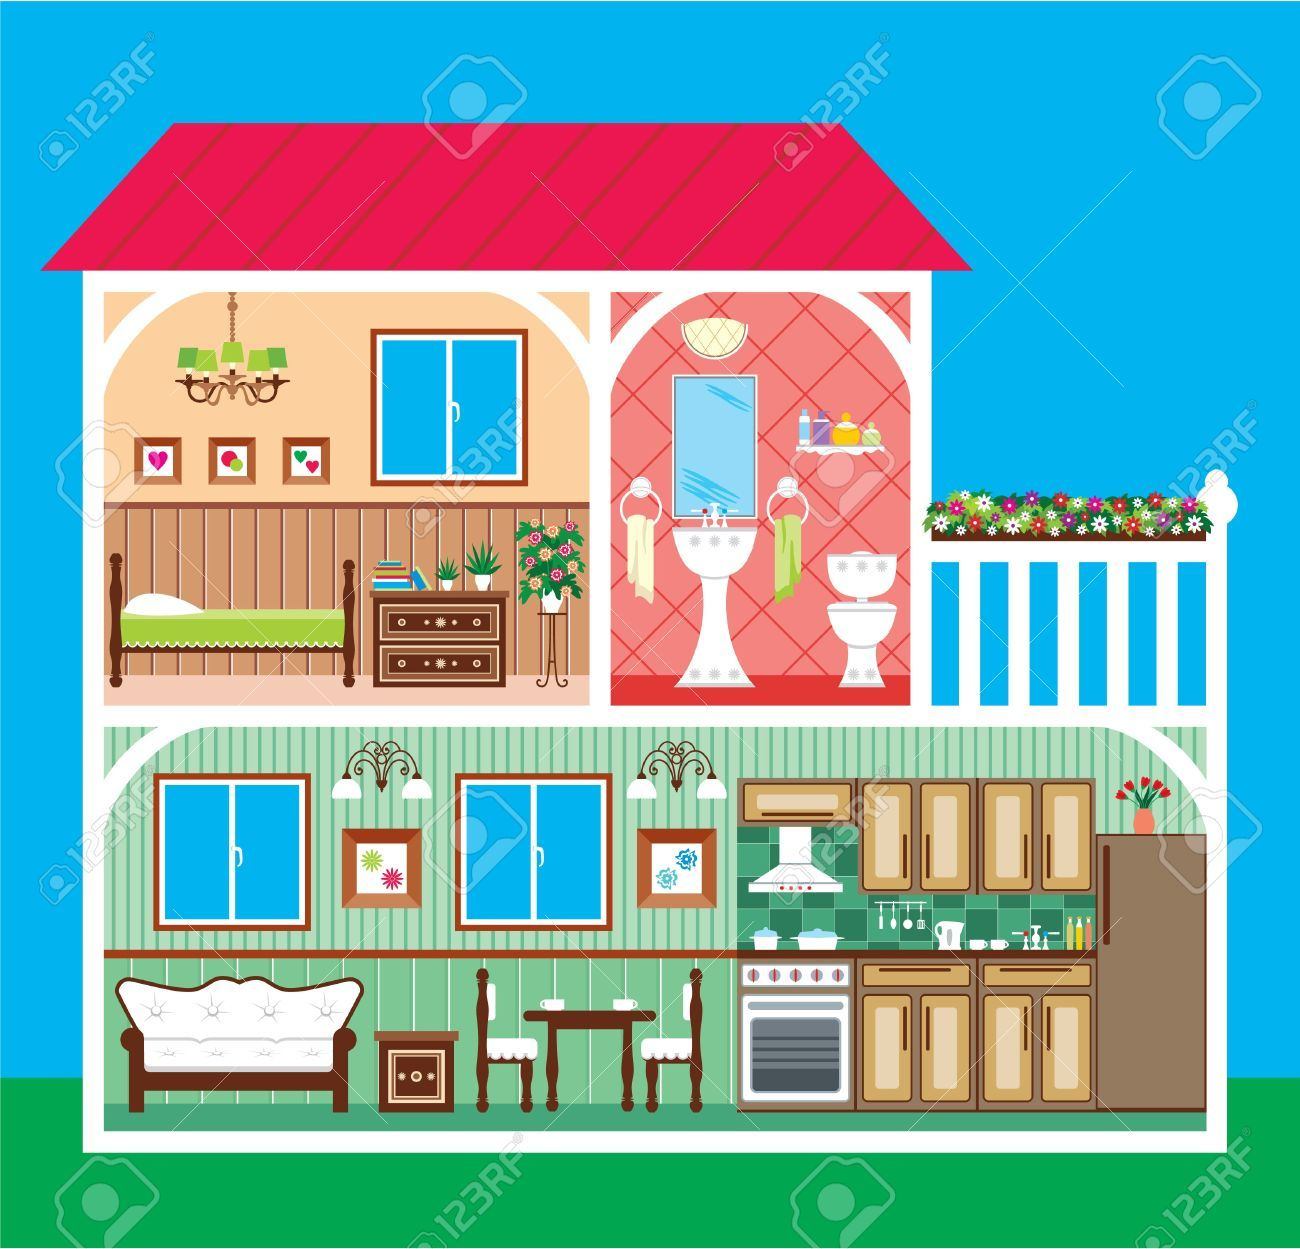 Apartment clipart apartment home. Image result for inside